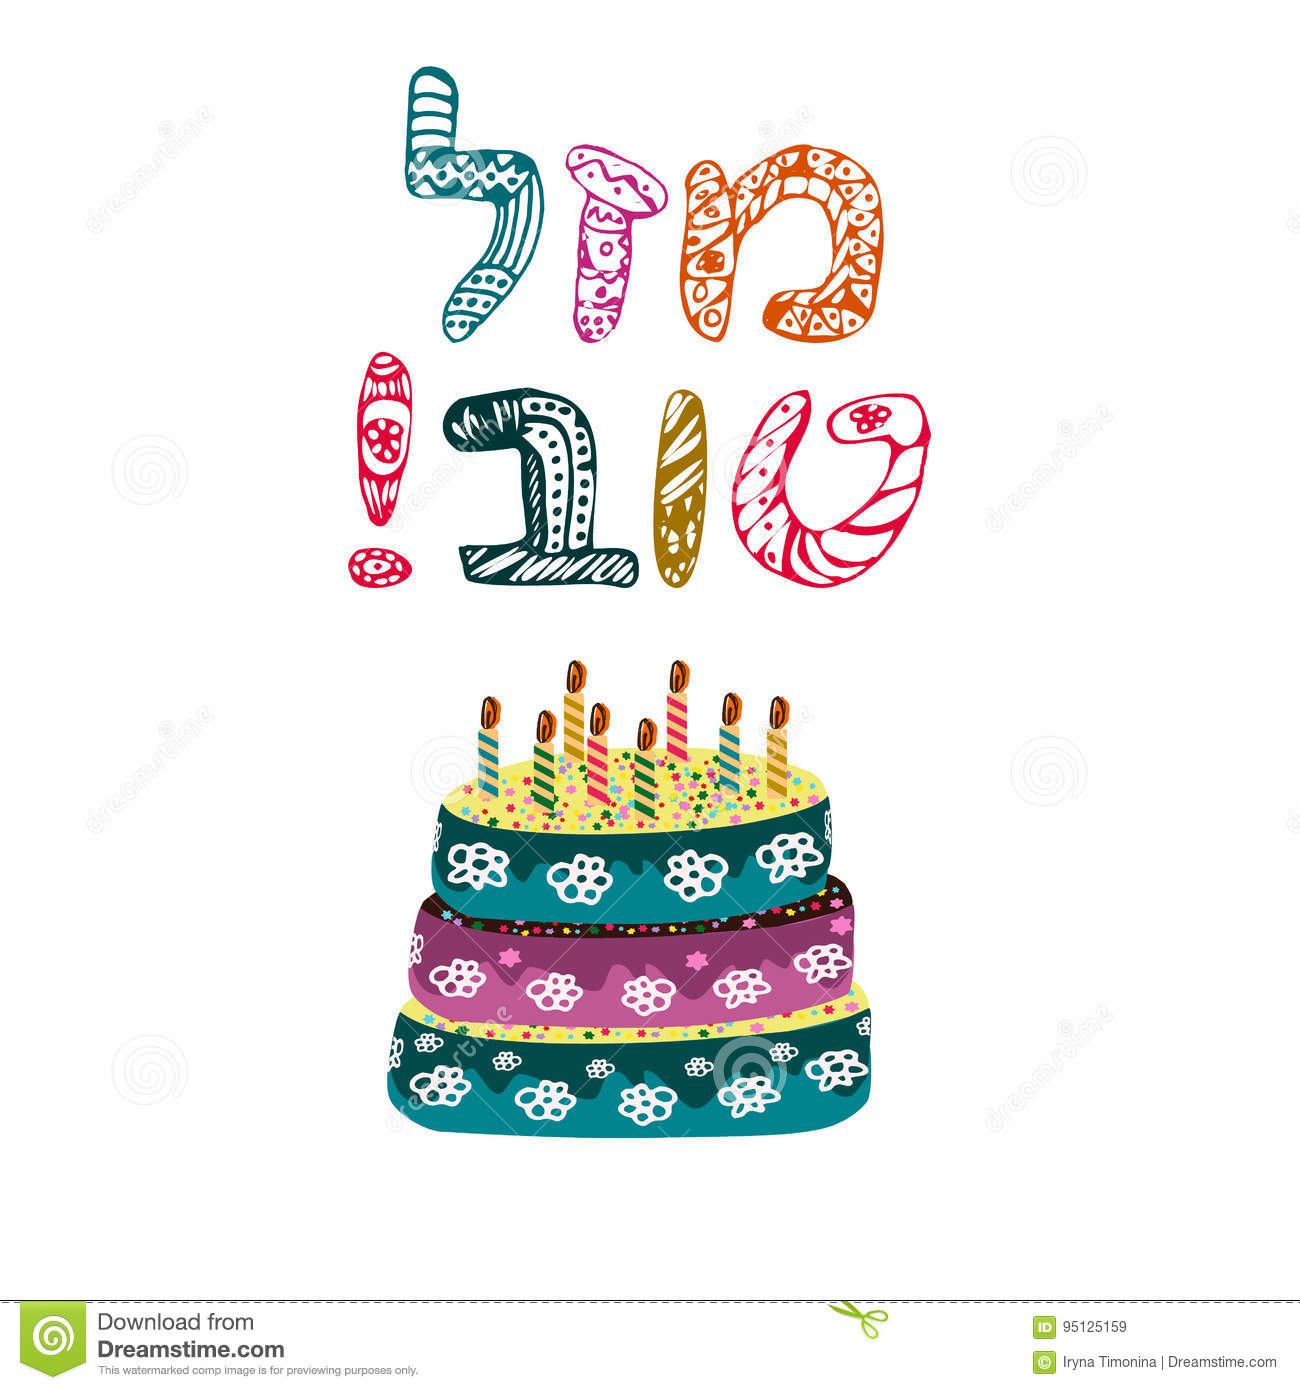 A Cake With Candles And An Inscription Of Doodles In Hebrew Mazl Tov We Wish You Happiness Happy Birthday Vector Illustration